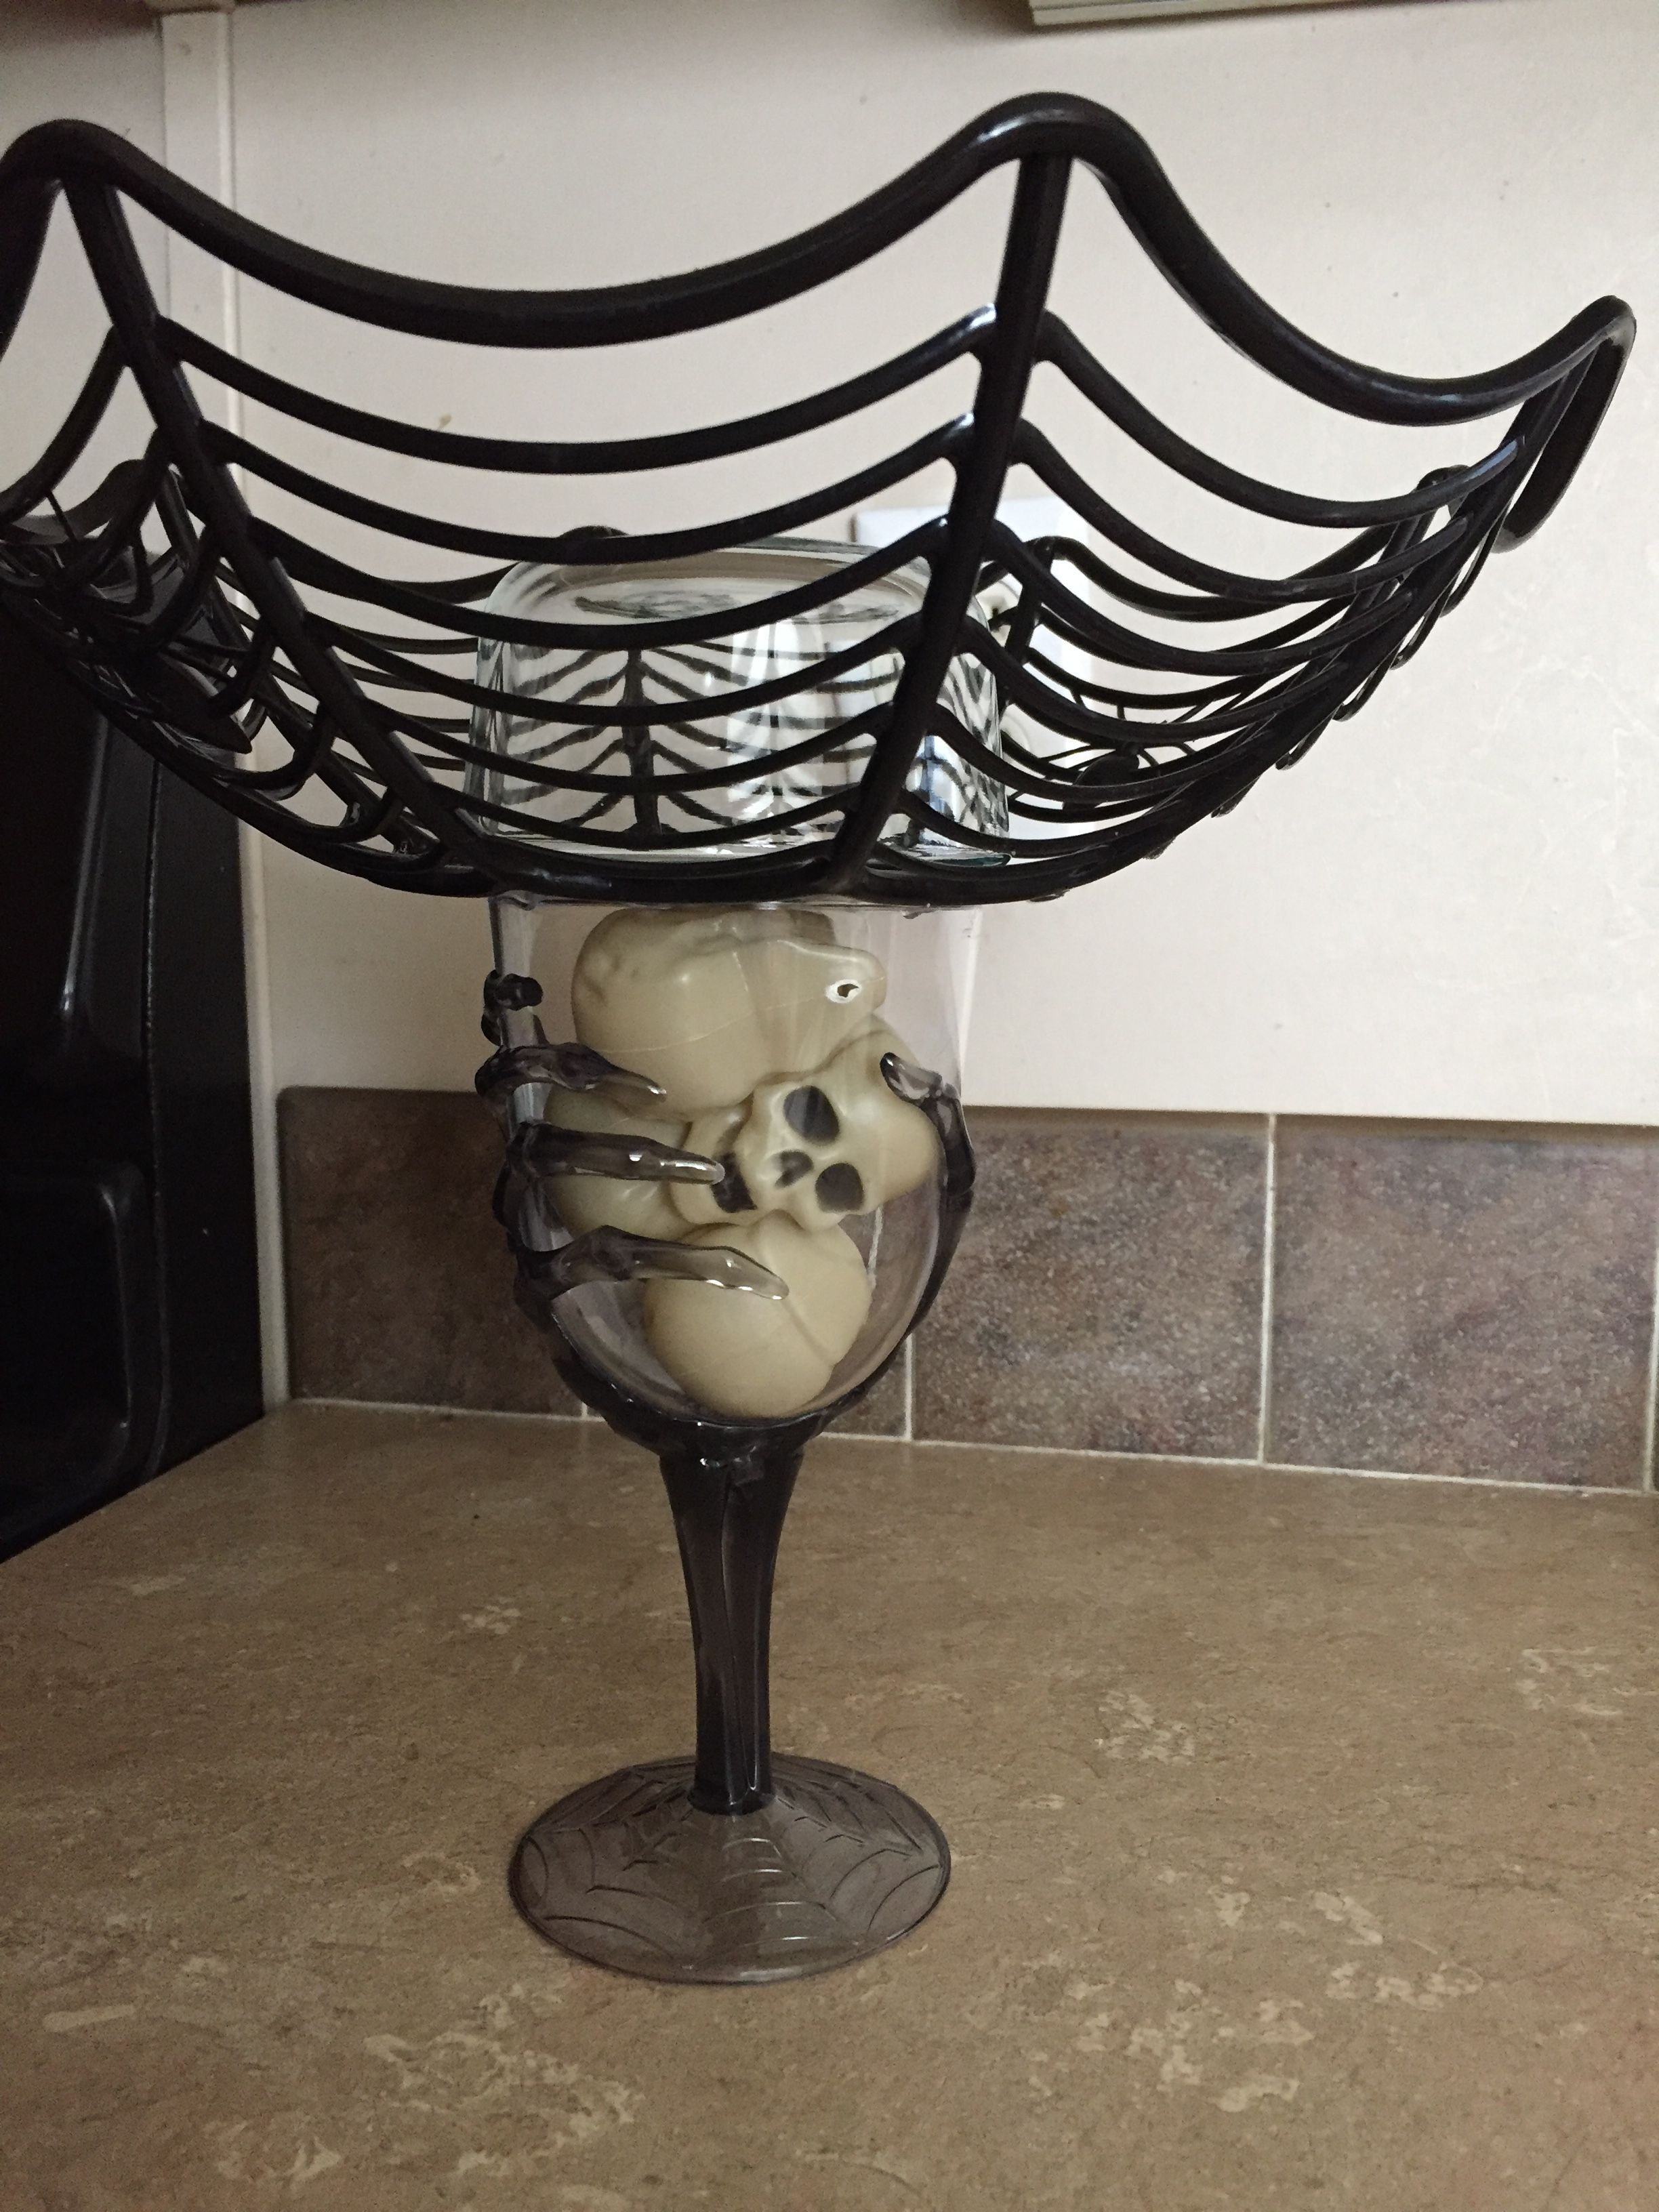 I made this using just a few Halloween items found at my